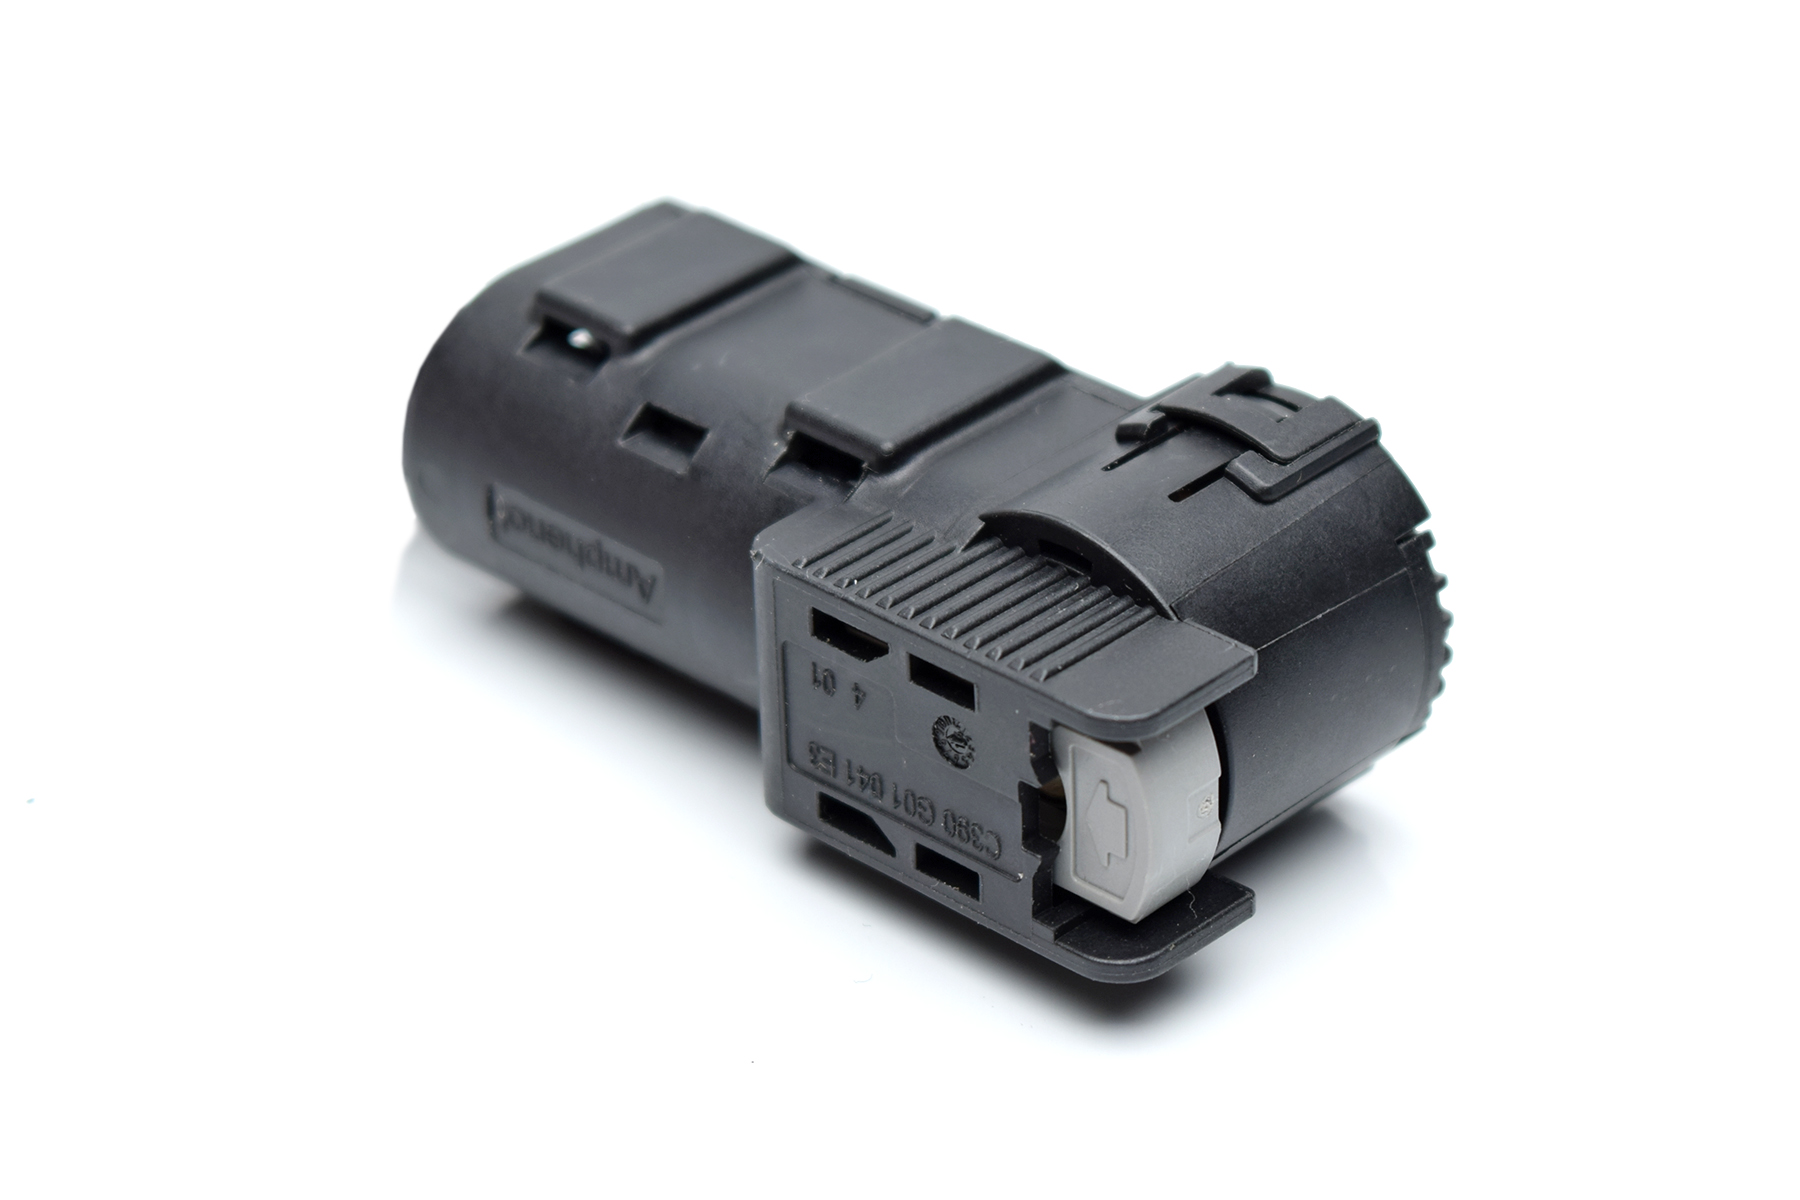 C390G02241E3 8mm Active Pinlock Housing cover for 35mm² wire